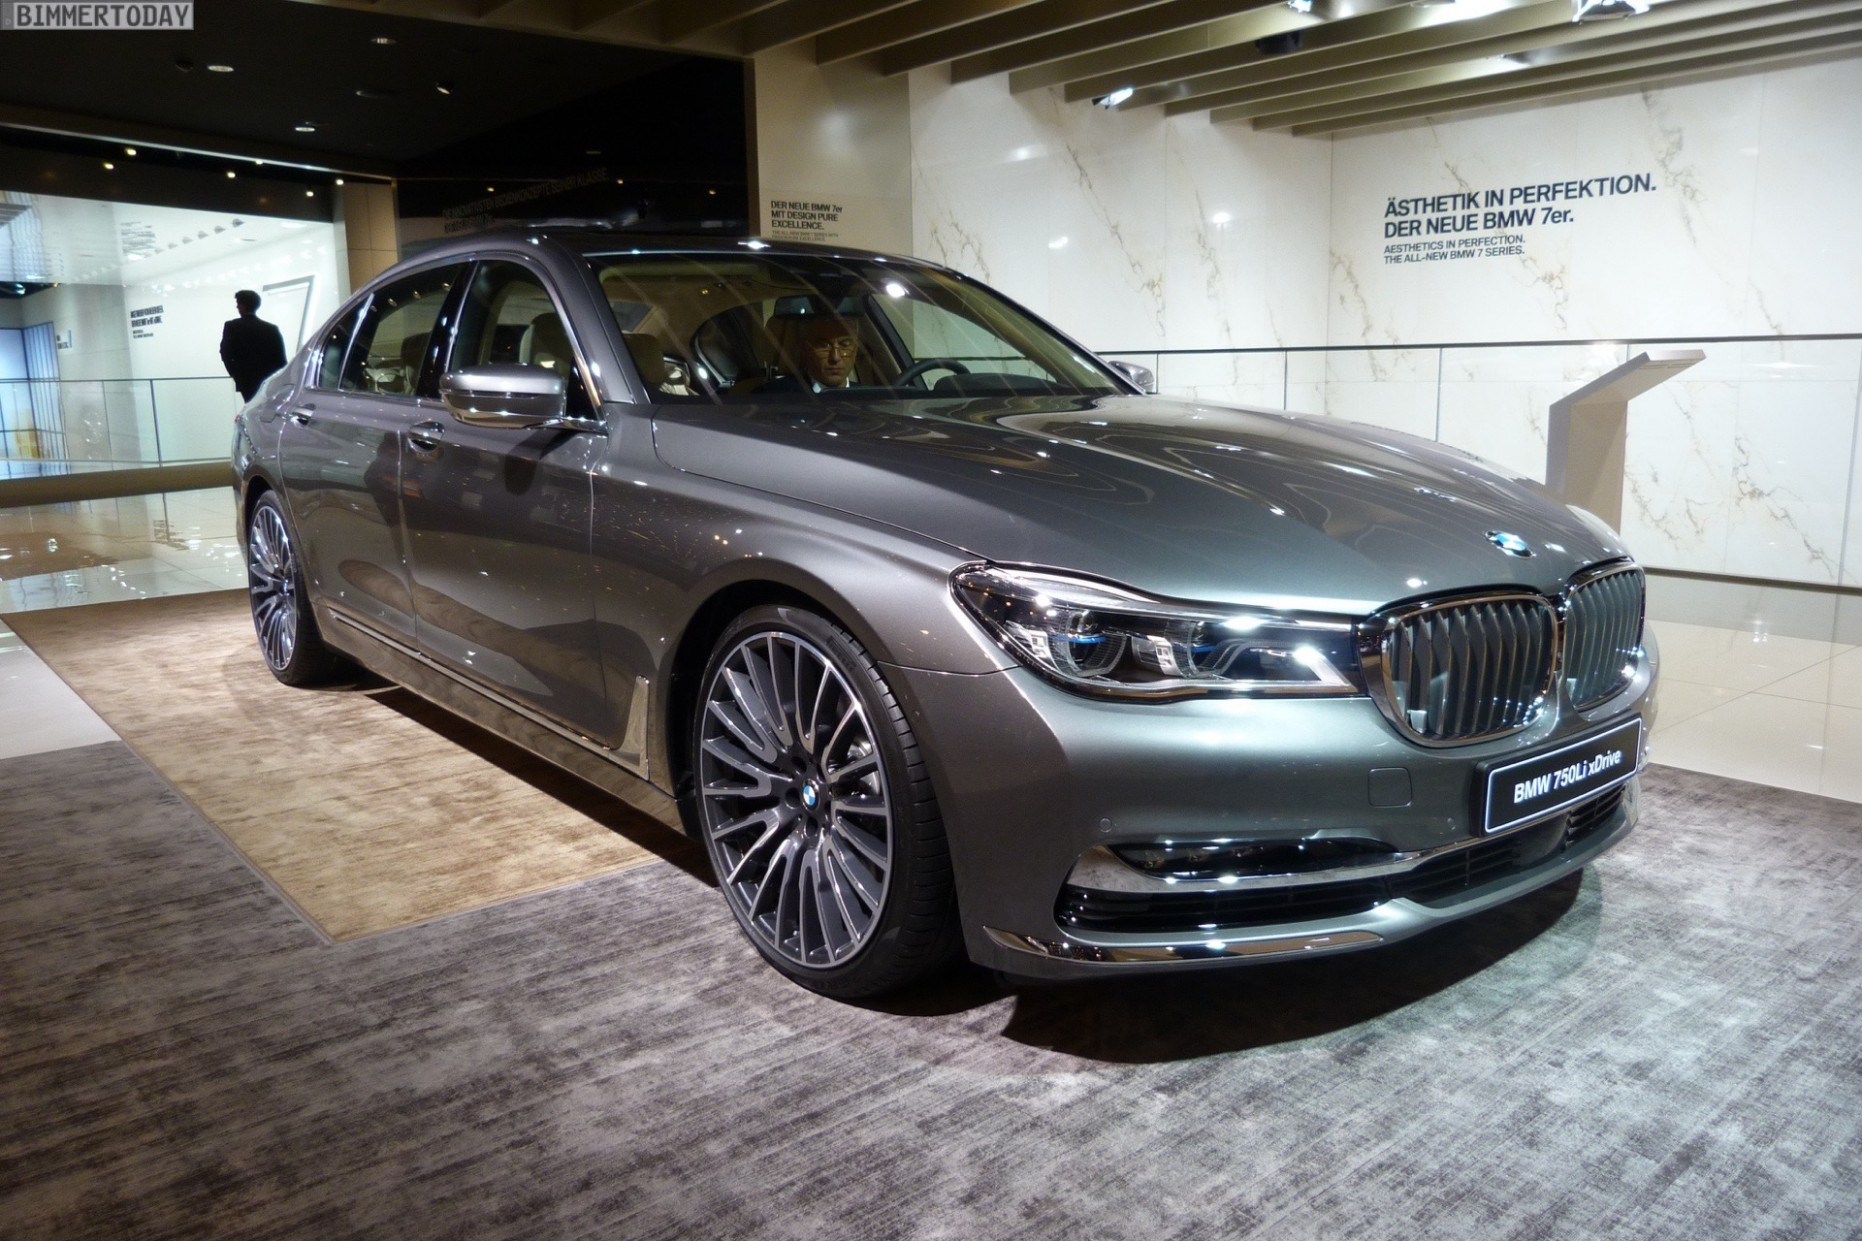 Redesign and Concept 2022 BMW 7 Series Perfection New